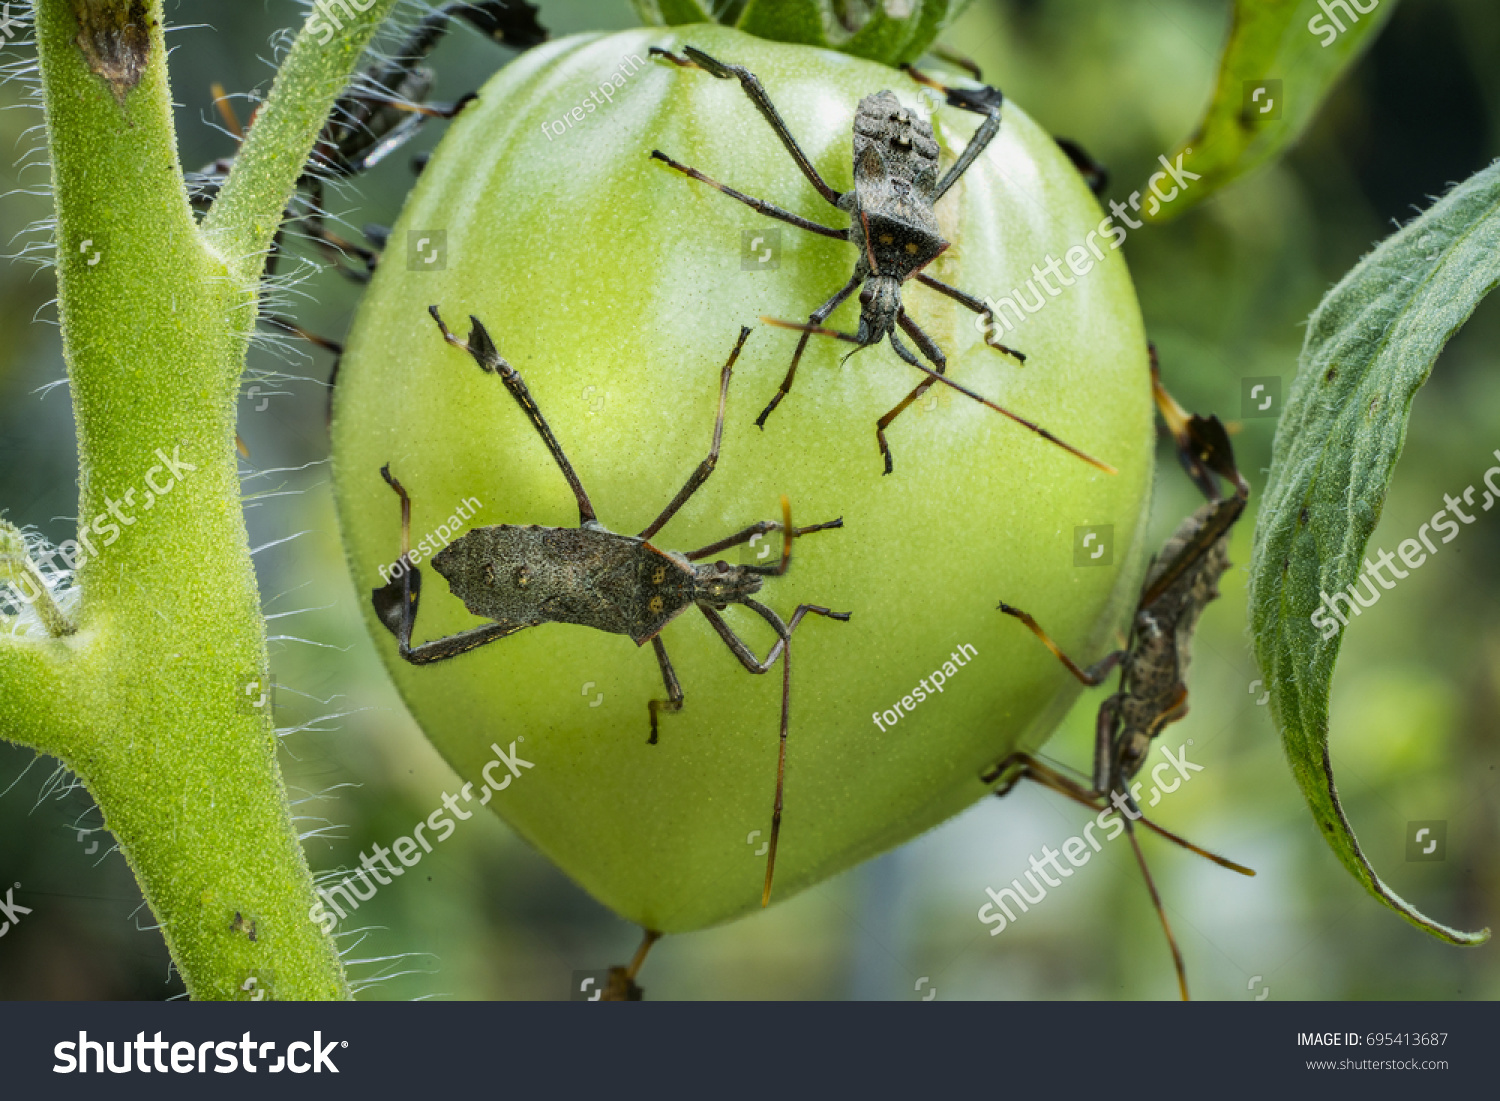 Leaf Footed Bug Called Stink Bug Stock Photo 695413687 - Shutterstock